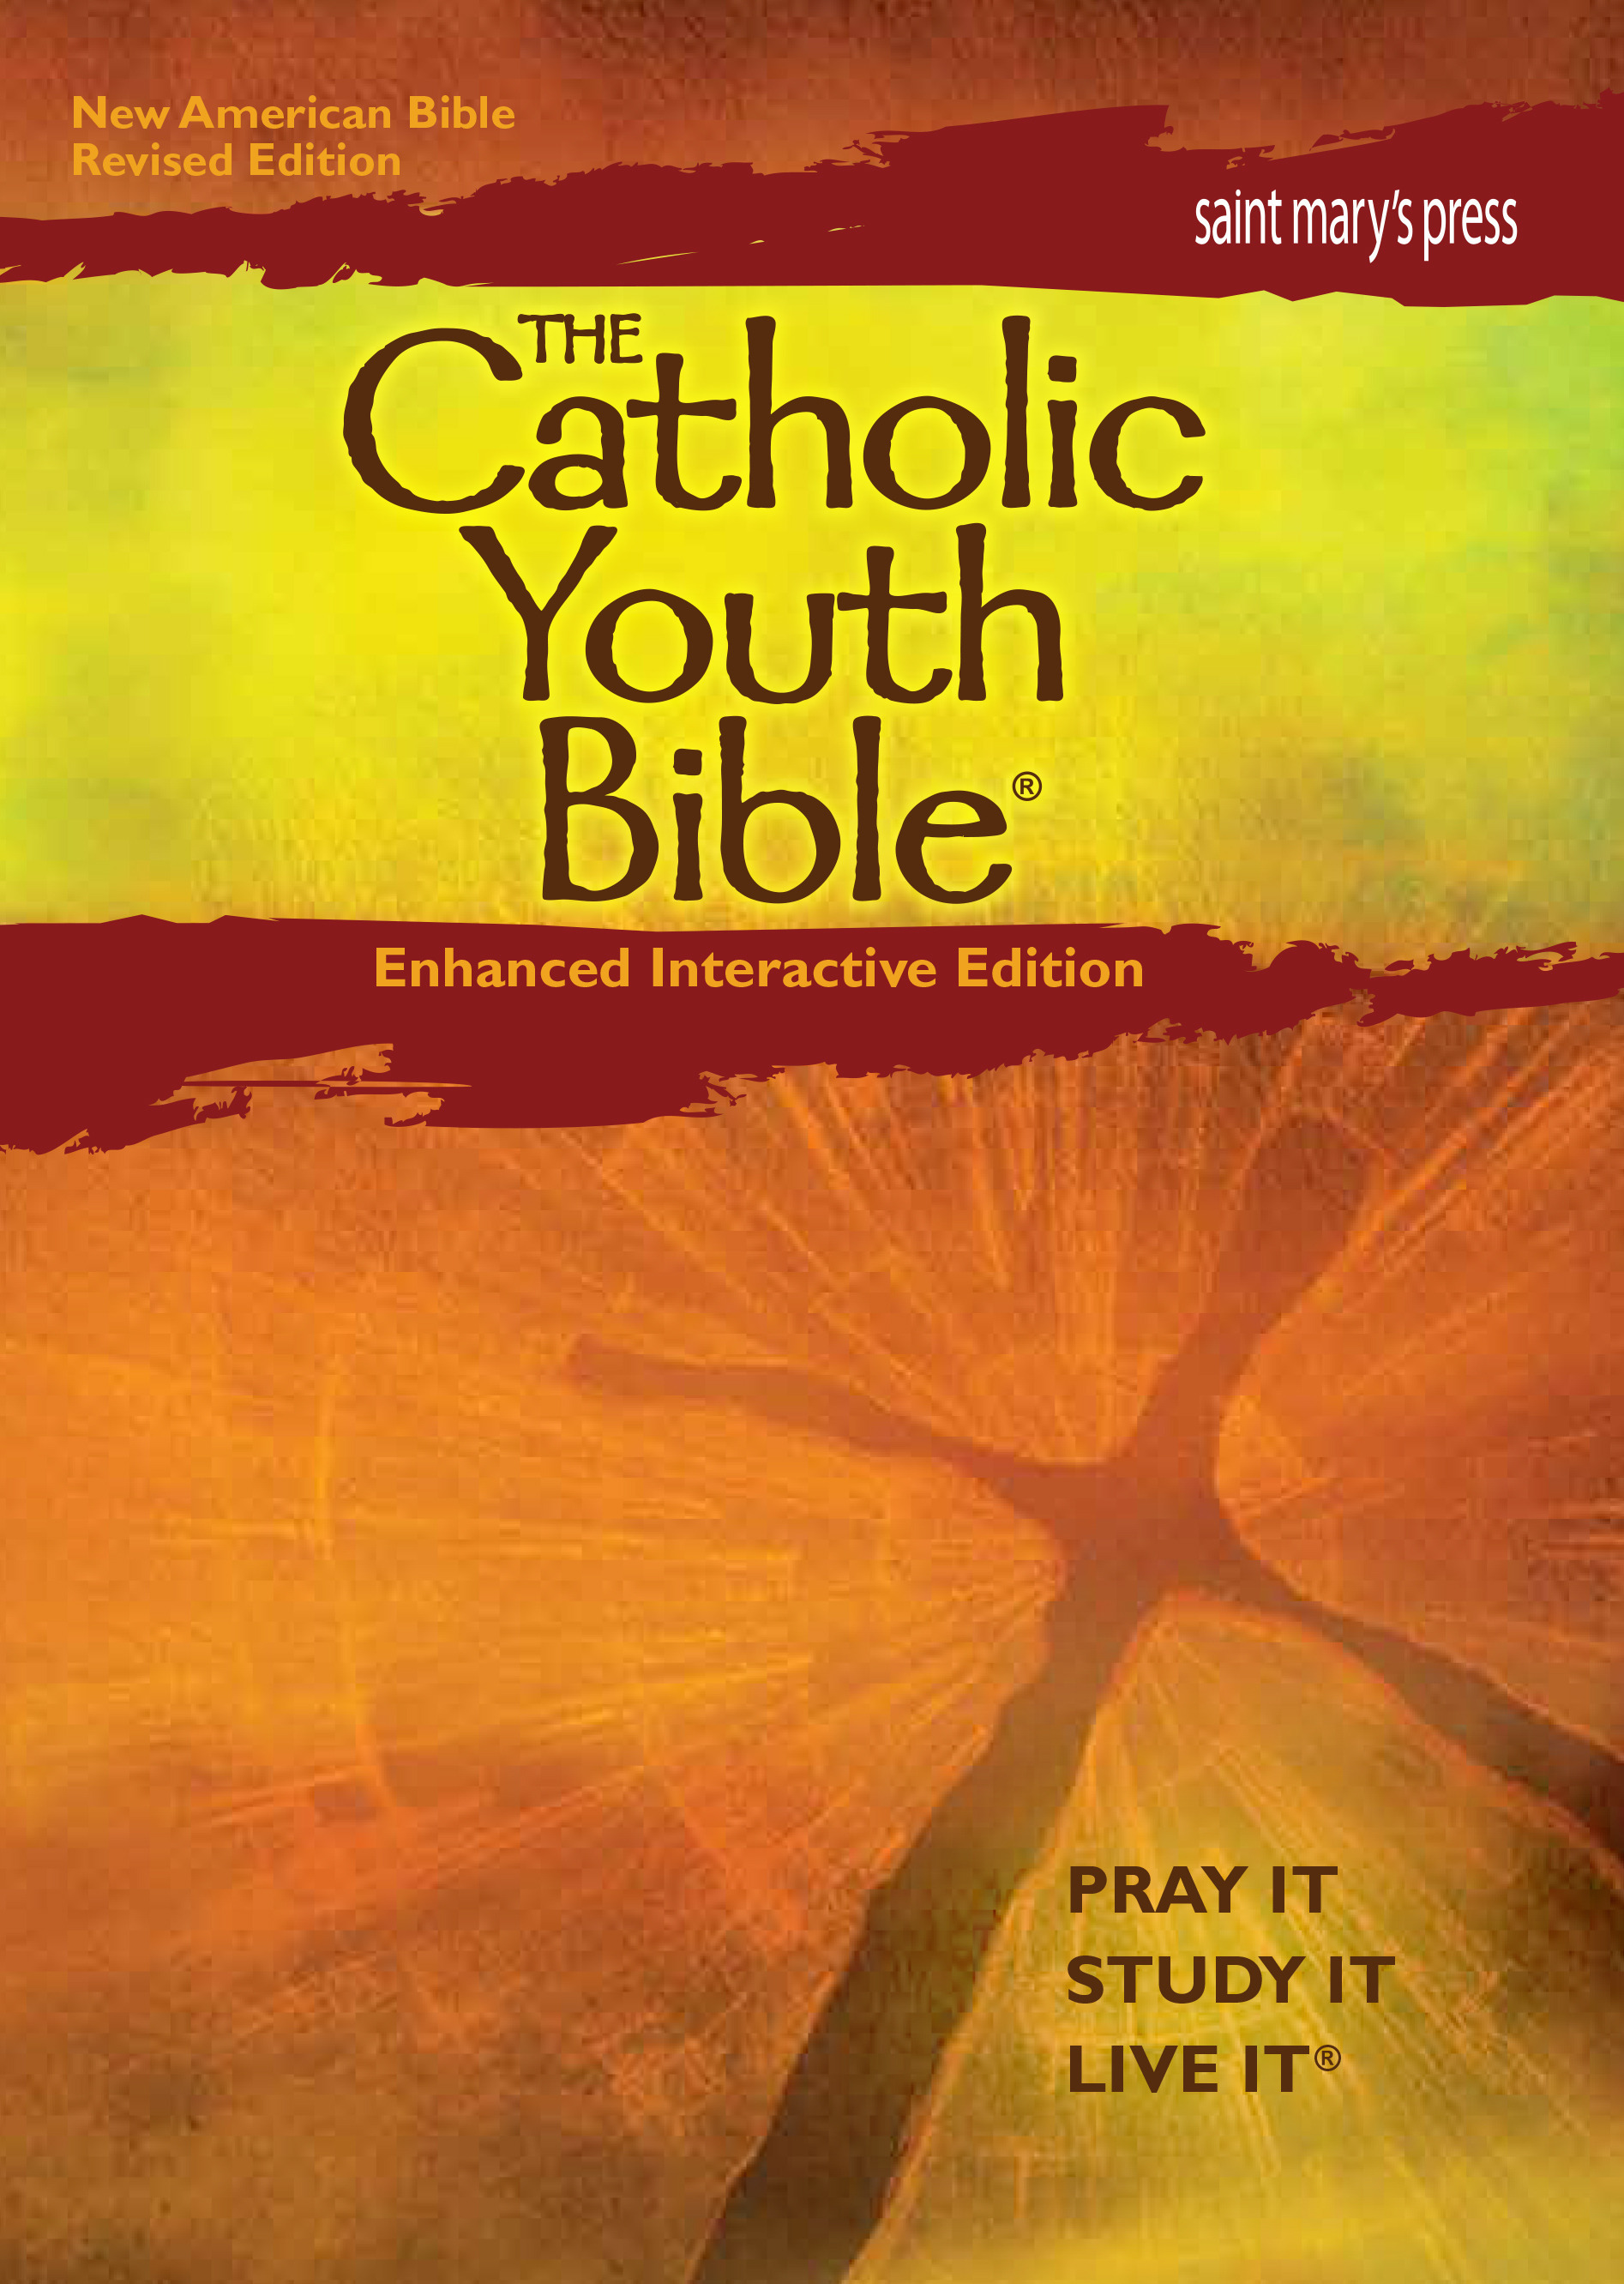 The Catholic Youth Bible - NAB interactive edition (1 Year Access)